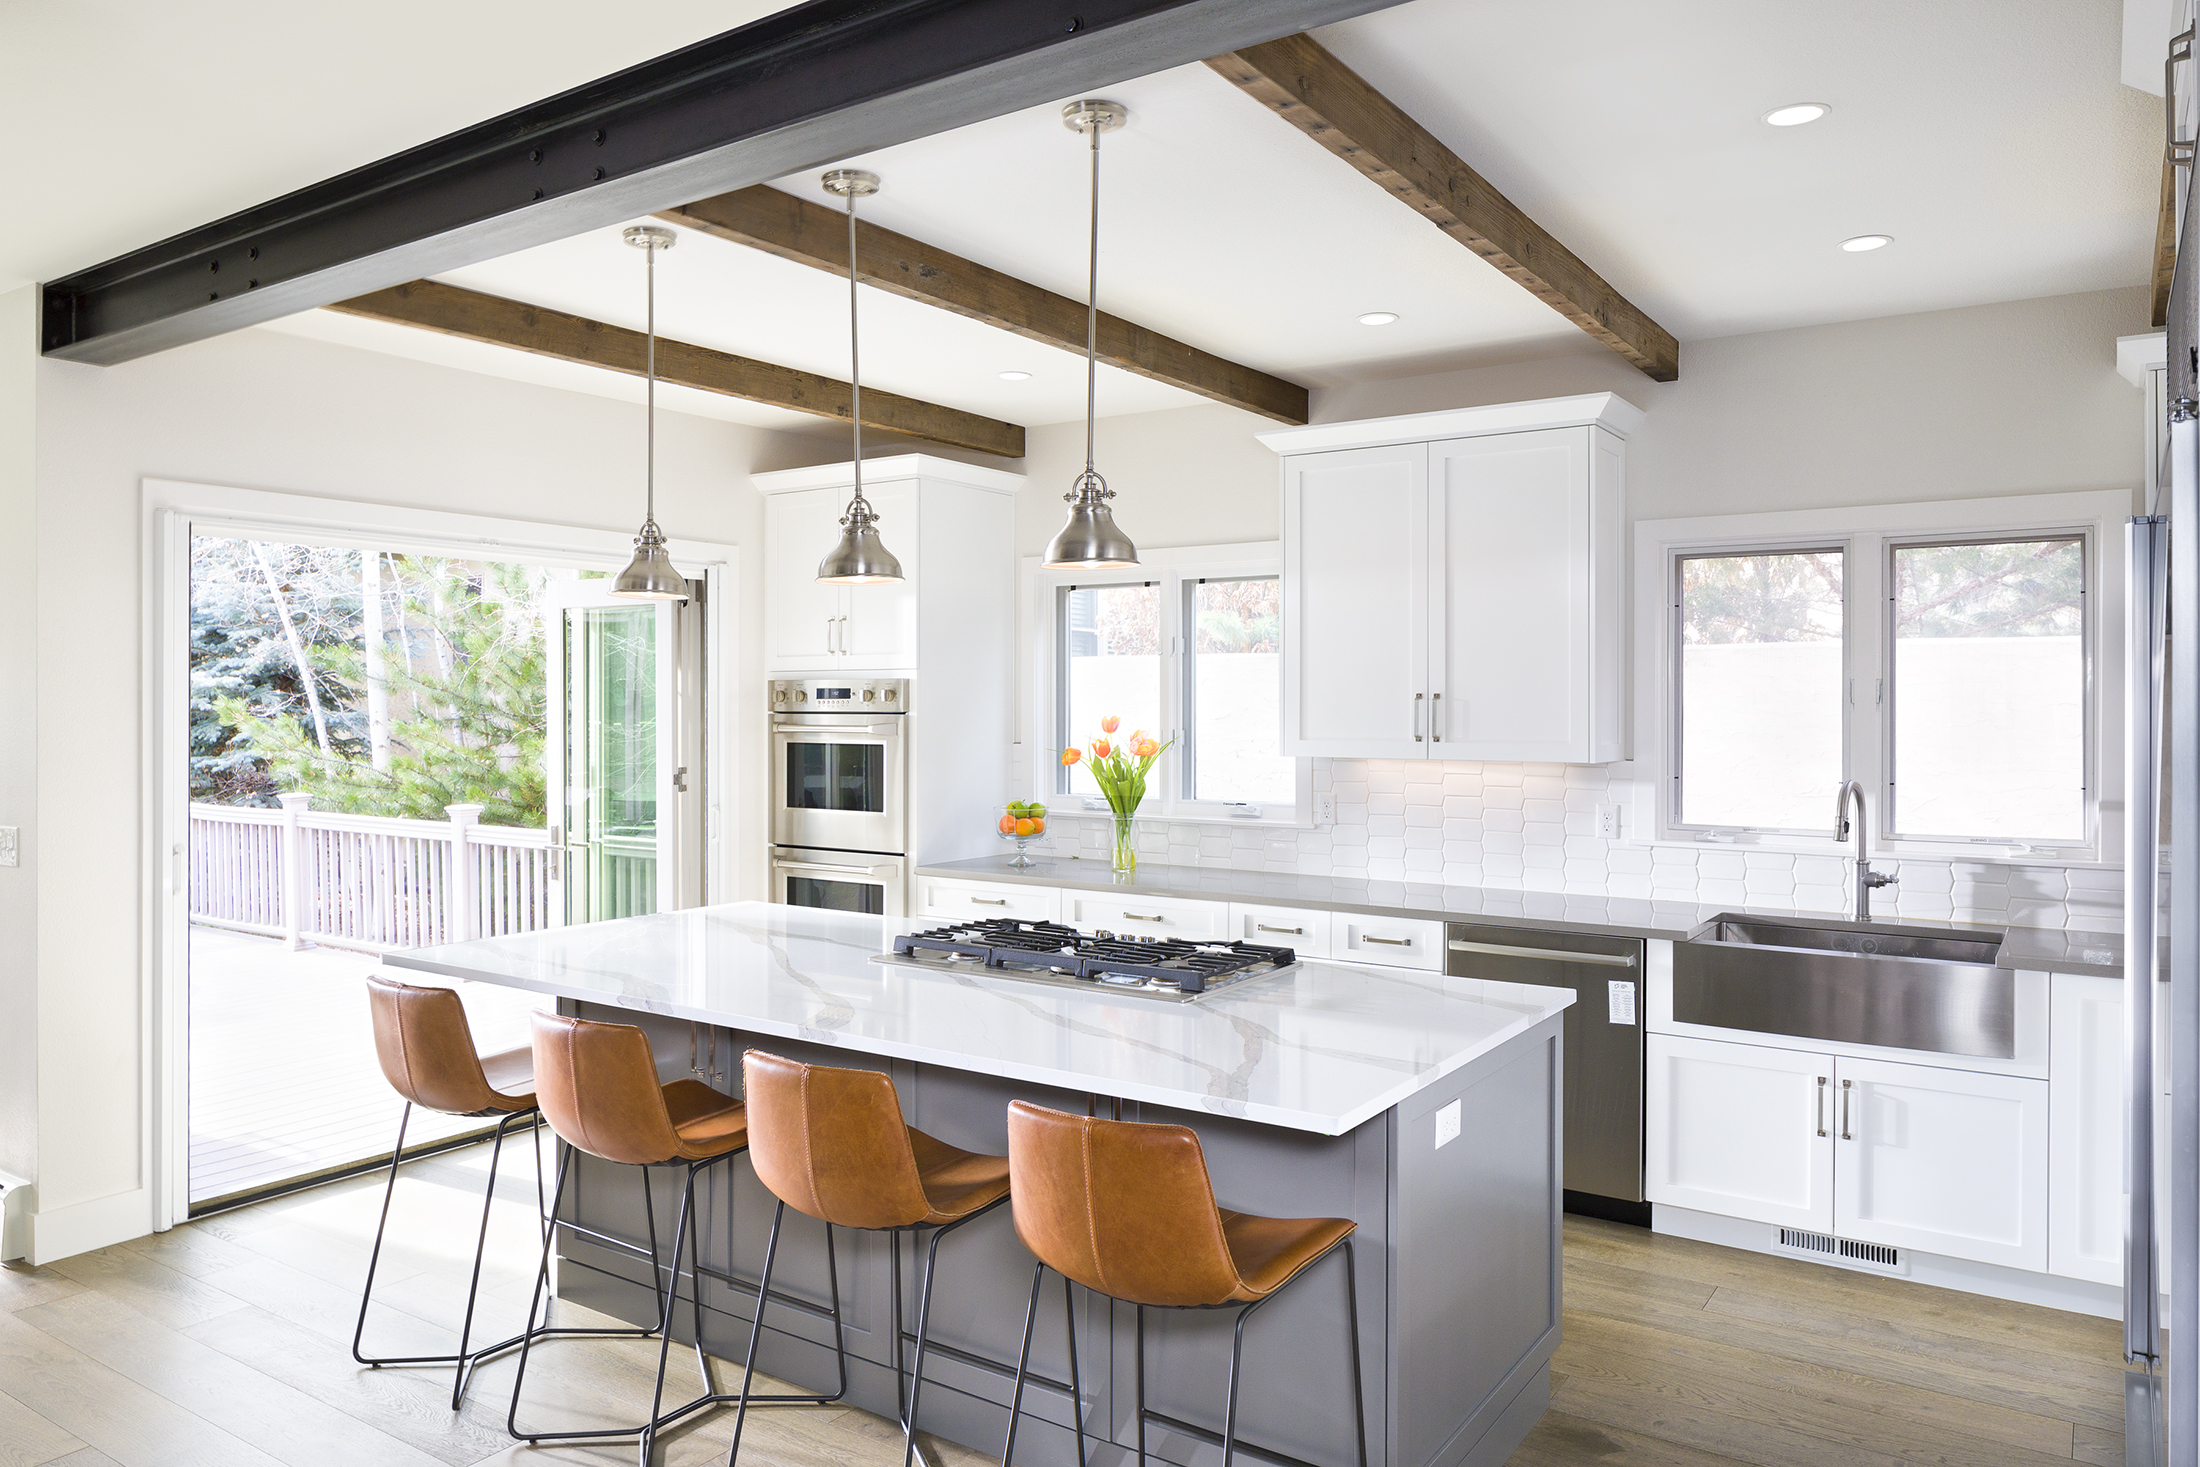 Melton Design Build Refined Industrial Boulder Colorado